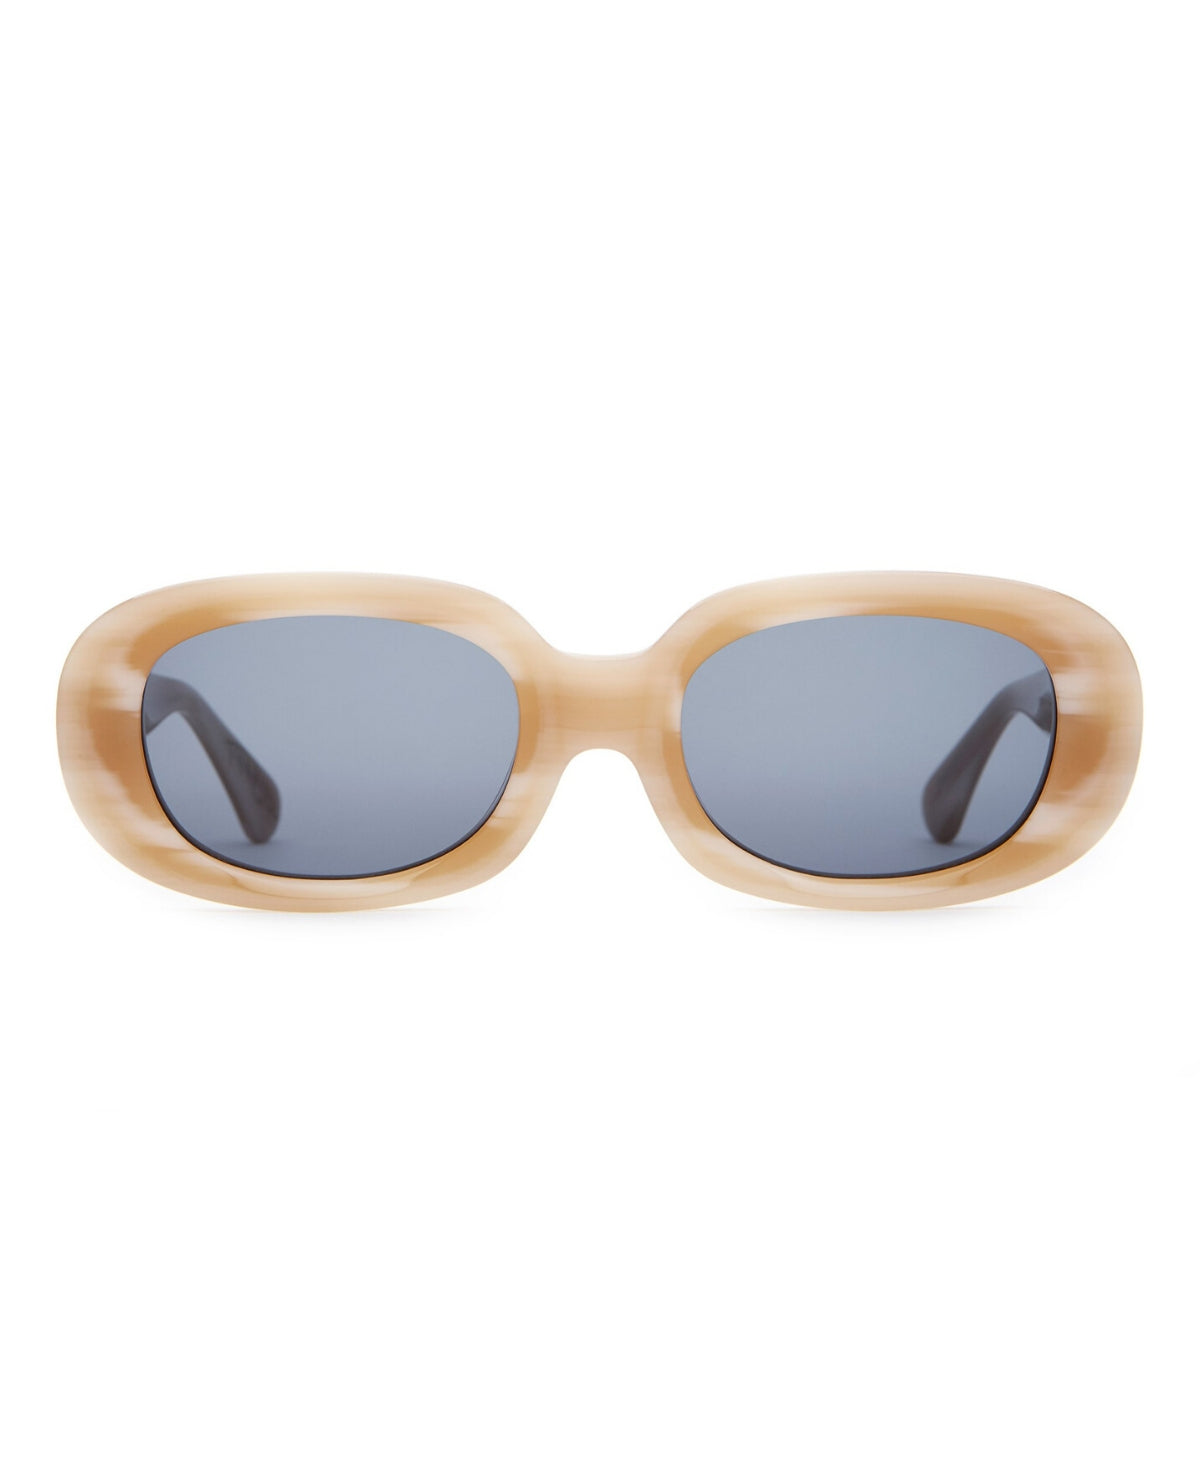 CRAP EYEWEAR The Bikini Vision / Bone White / Vintage Blue